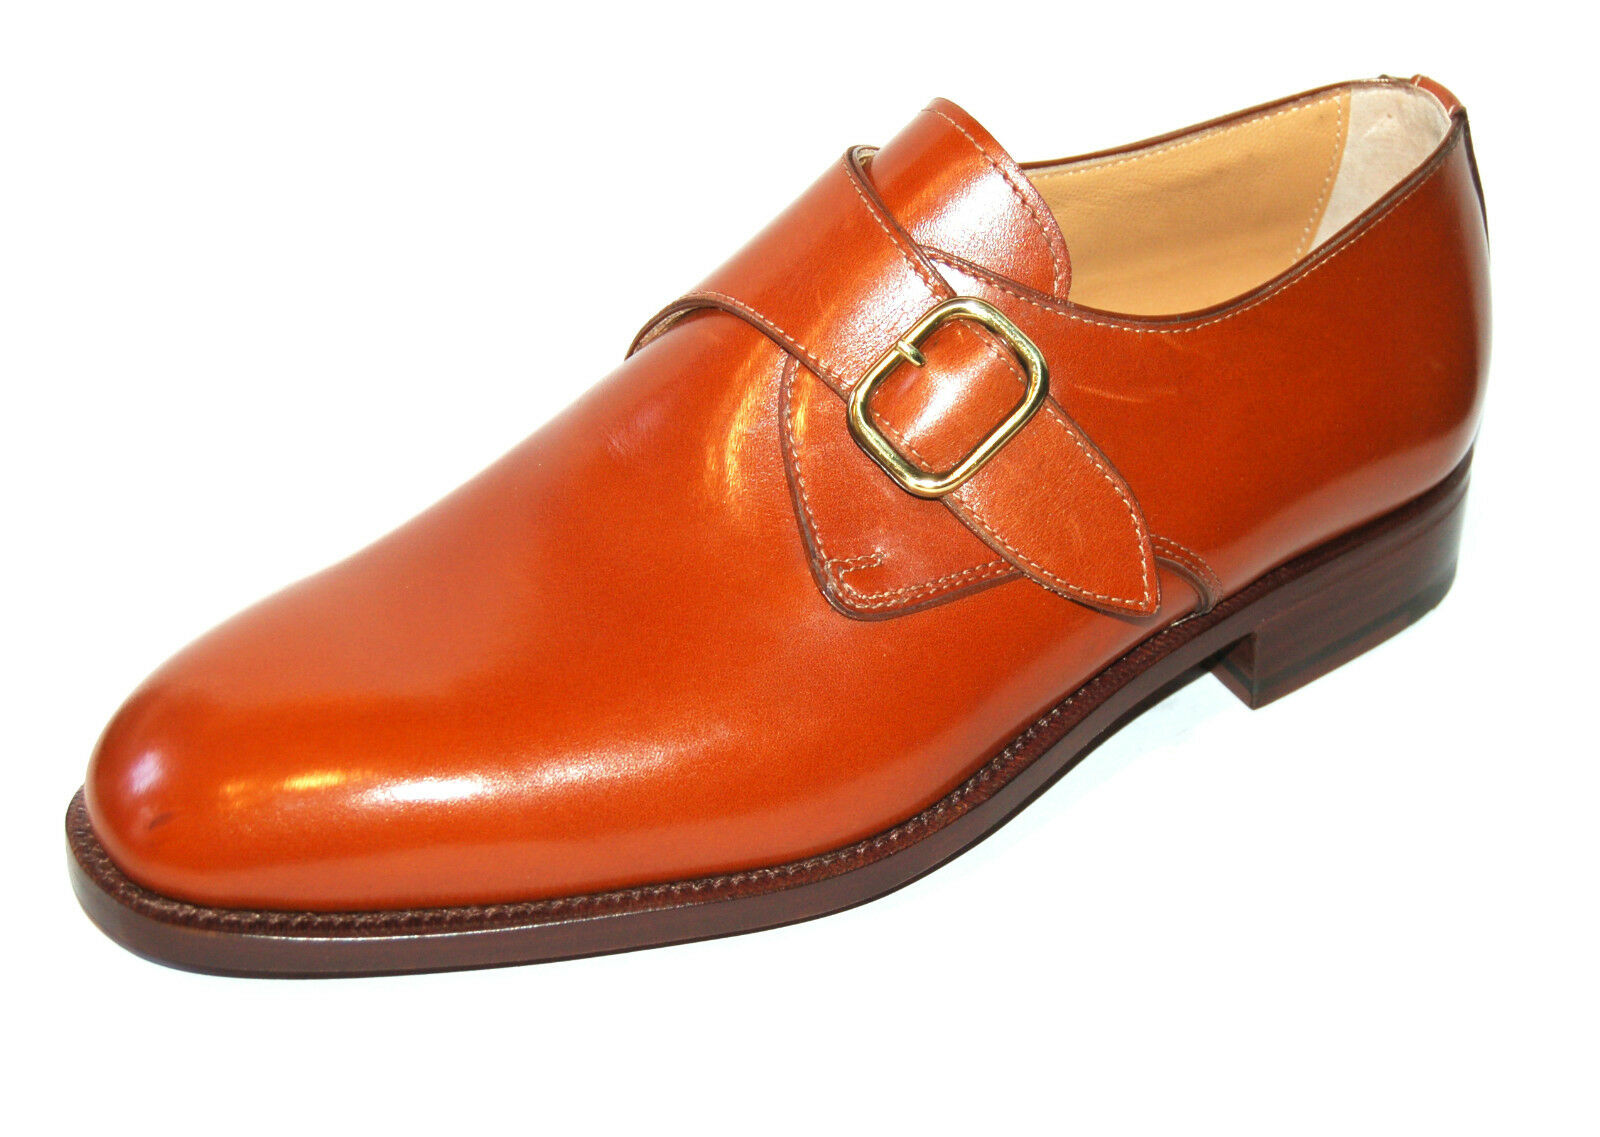 MAN SOLE BUCKLE DERBY - CALF 4000 TAN - LEATHER SOLE MAN + BLAKE CONSTRUCTION Scarpe classiche da uomo ce79b2